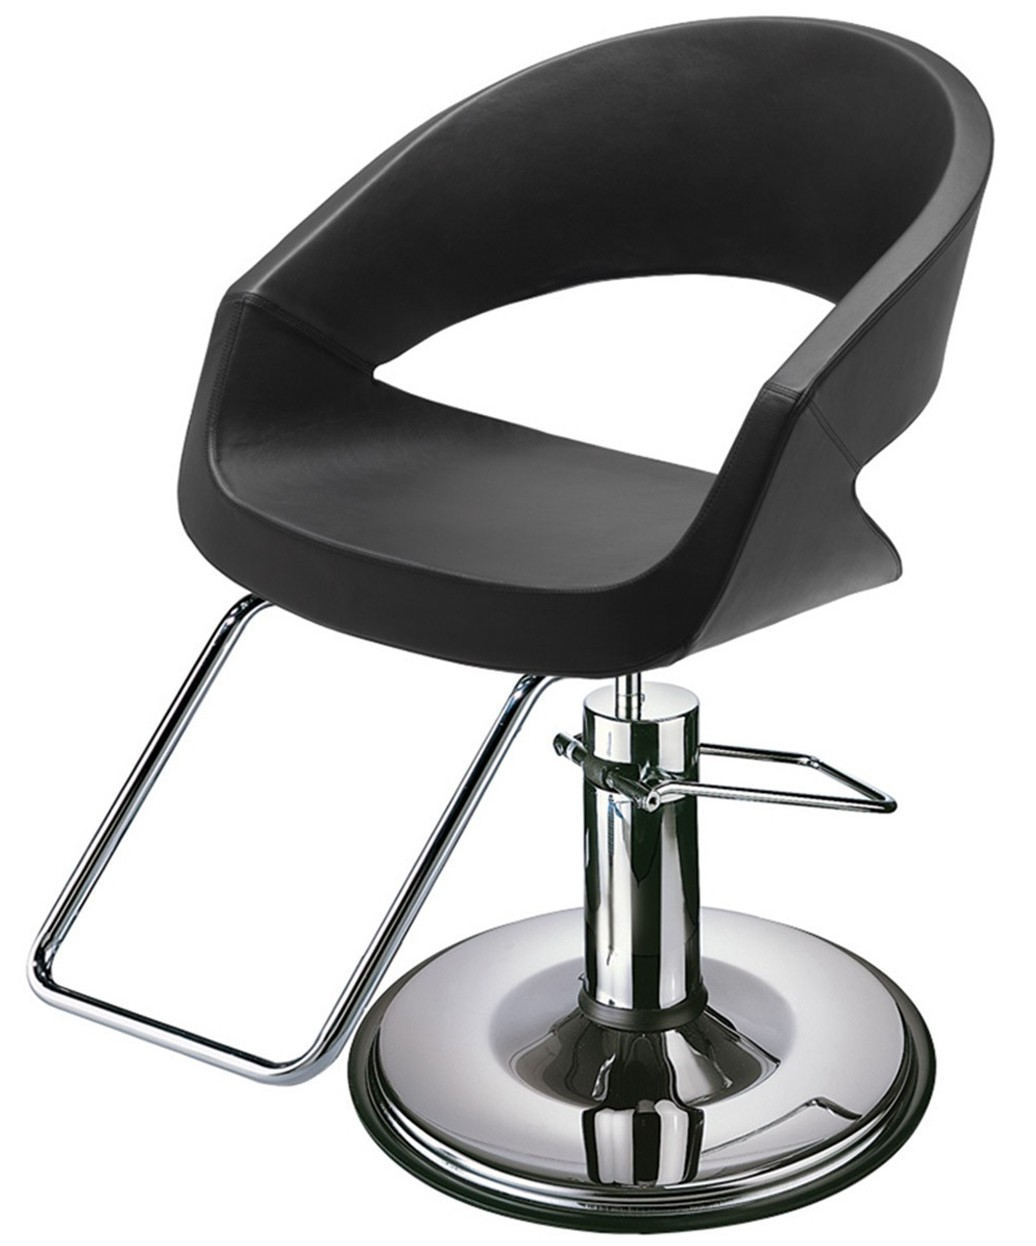 ST-M80 Caruso Styling Chair